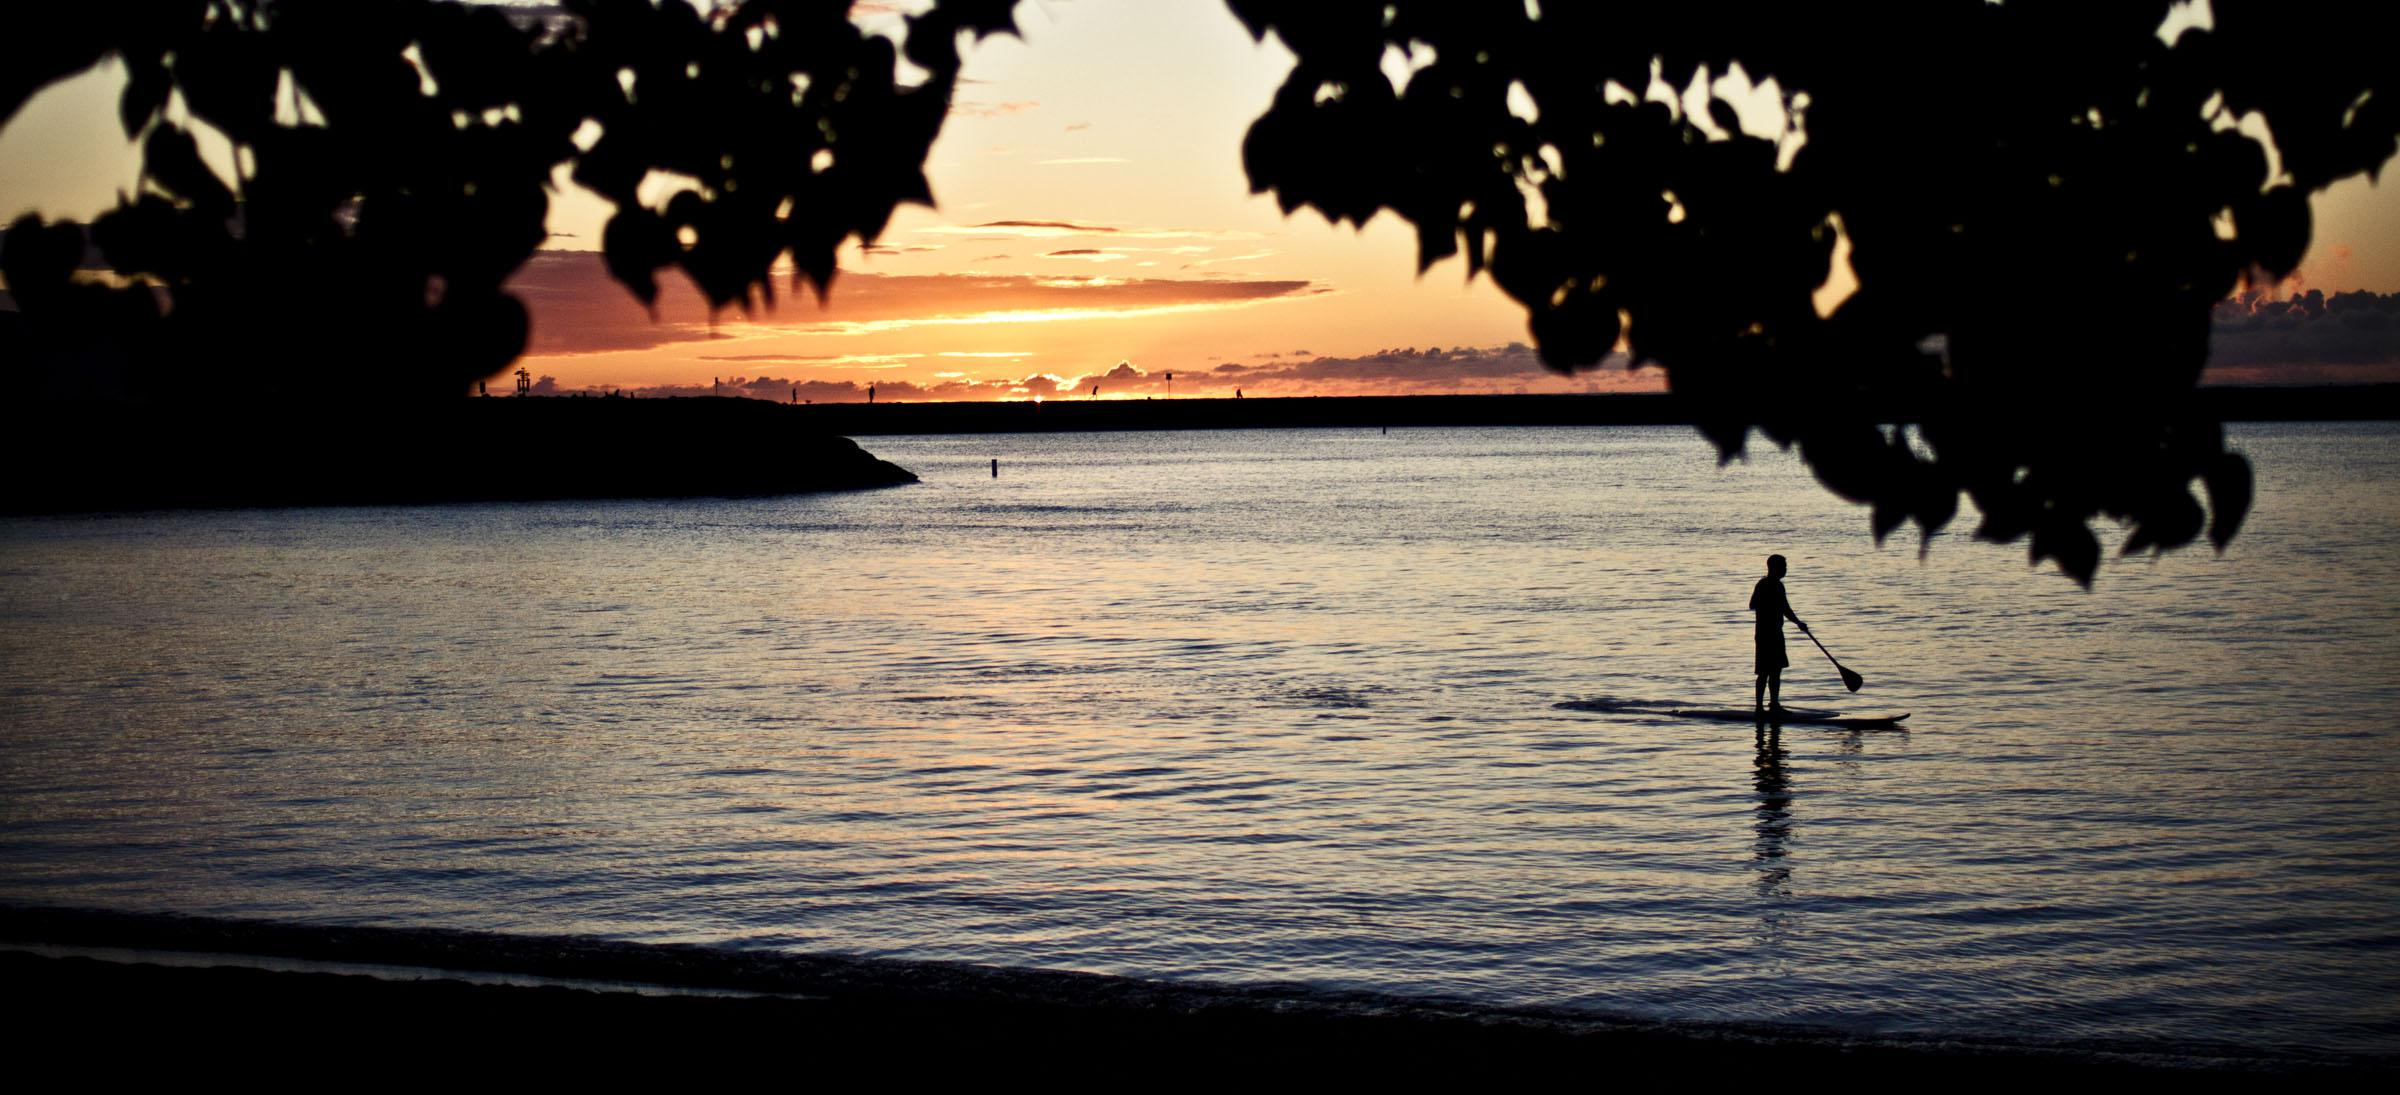 """Oahu North Shore<br/>Photo <a href=""""//creativecommons.org/licences/by-nc/3.0/"""" class=""""cc-small"""" target=""""_blank""""><img typeof=""""foaf:Image"""" class=""""image-style-none"""" src=""""https://i.creativecommons.org/l/by-nc/3.0/80x15.png"""" width=""""80px"""" height=""""15px"""" alt=""""Creative Commons Licence"""" /></a> <a href=""""https://www.flickr.com/photos/37538755@N02/6146037991"""">Chris Hamby</a>"""